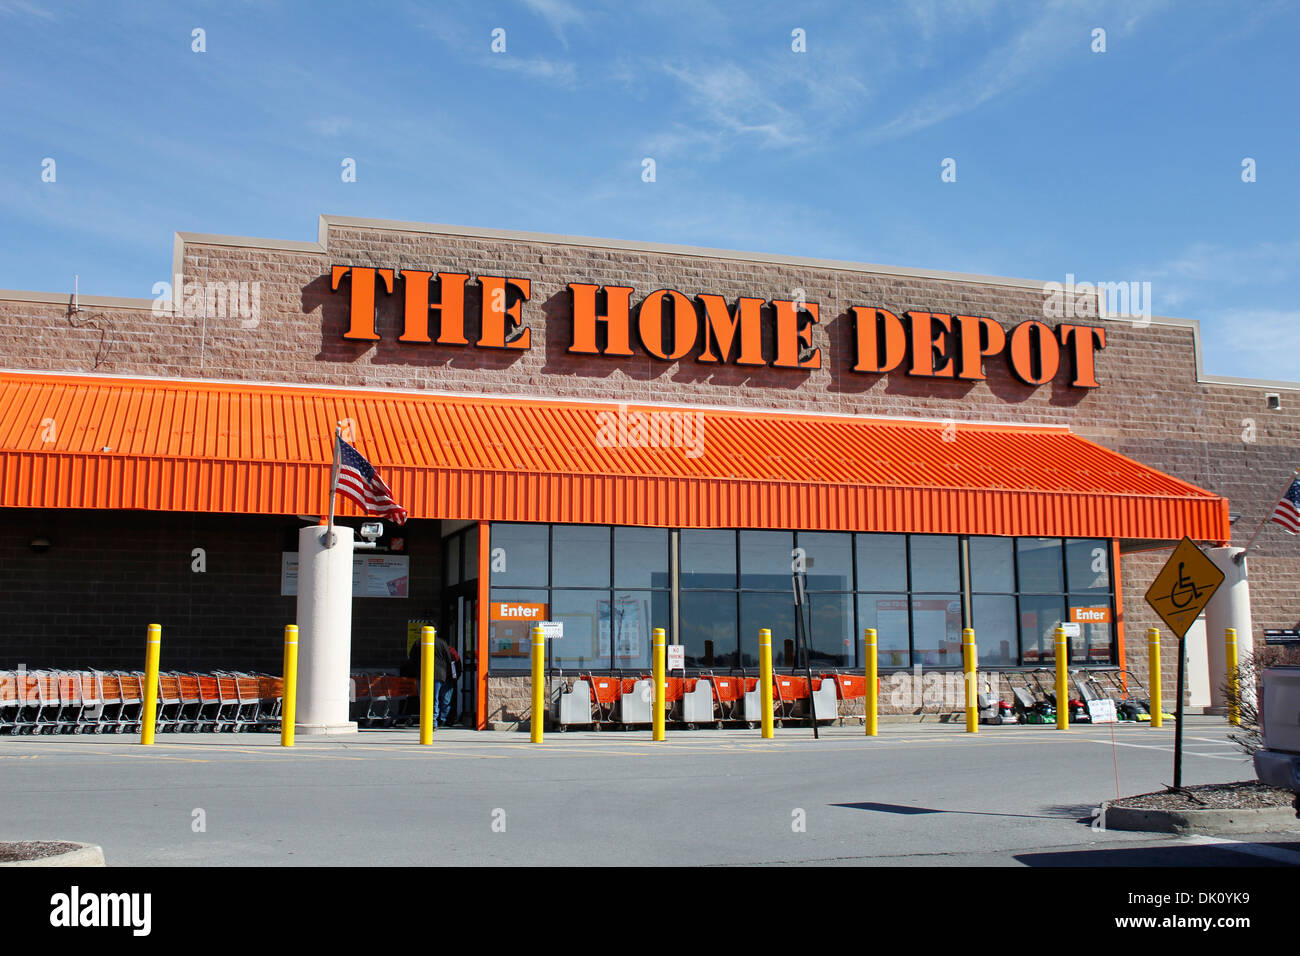 The Home Depot Store Front Stock Photo 63331277 Alamy